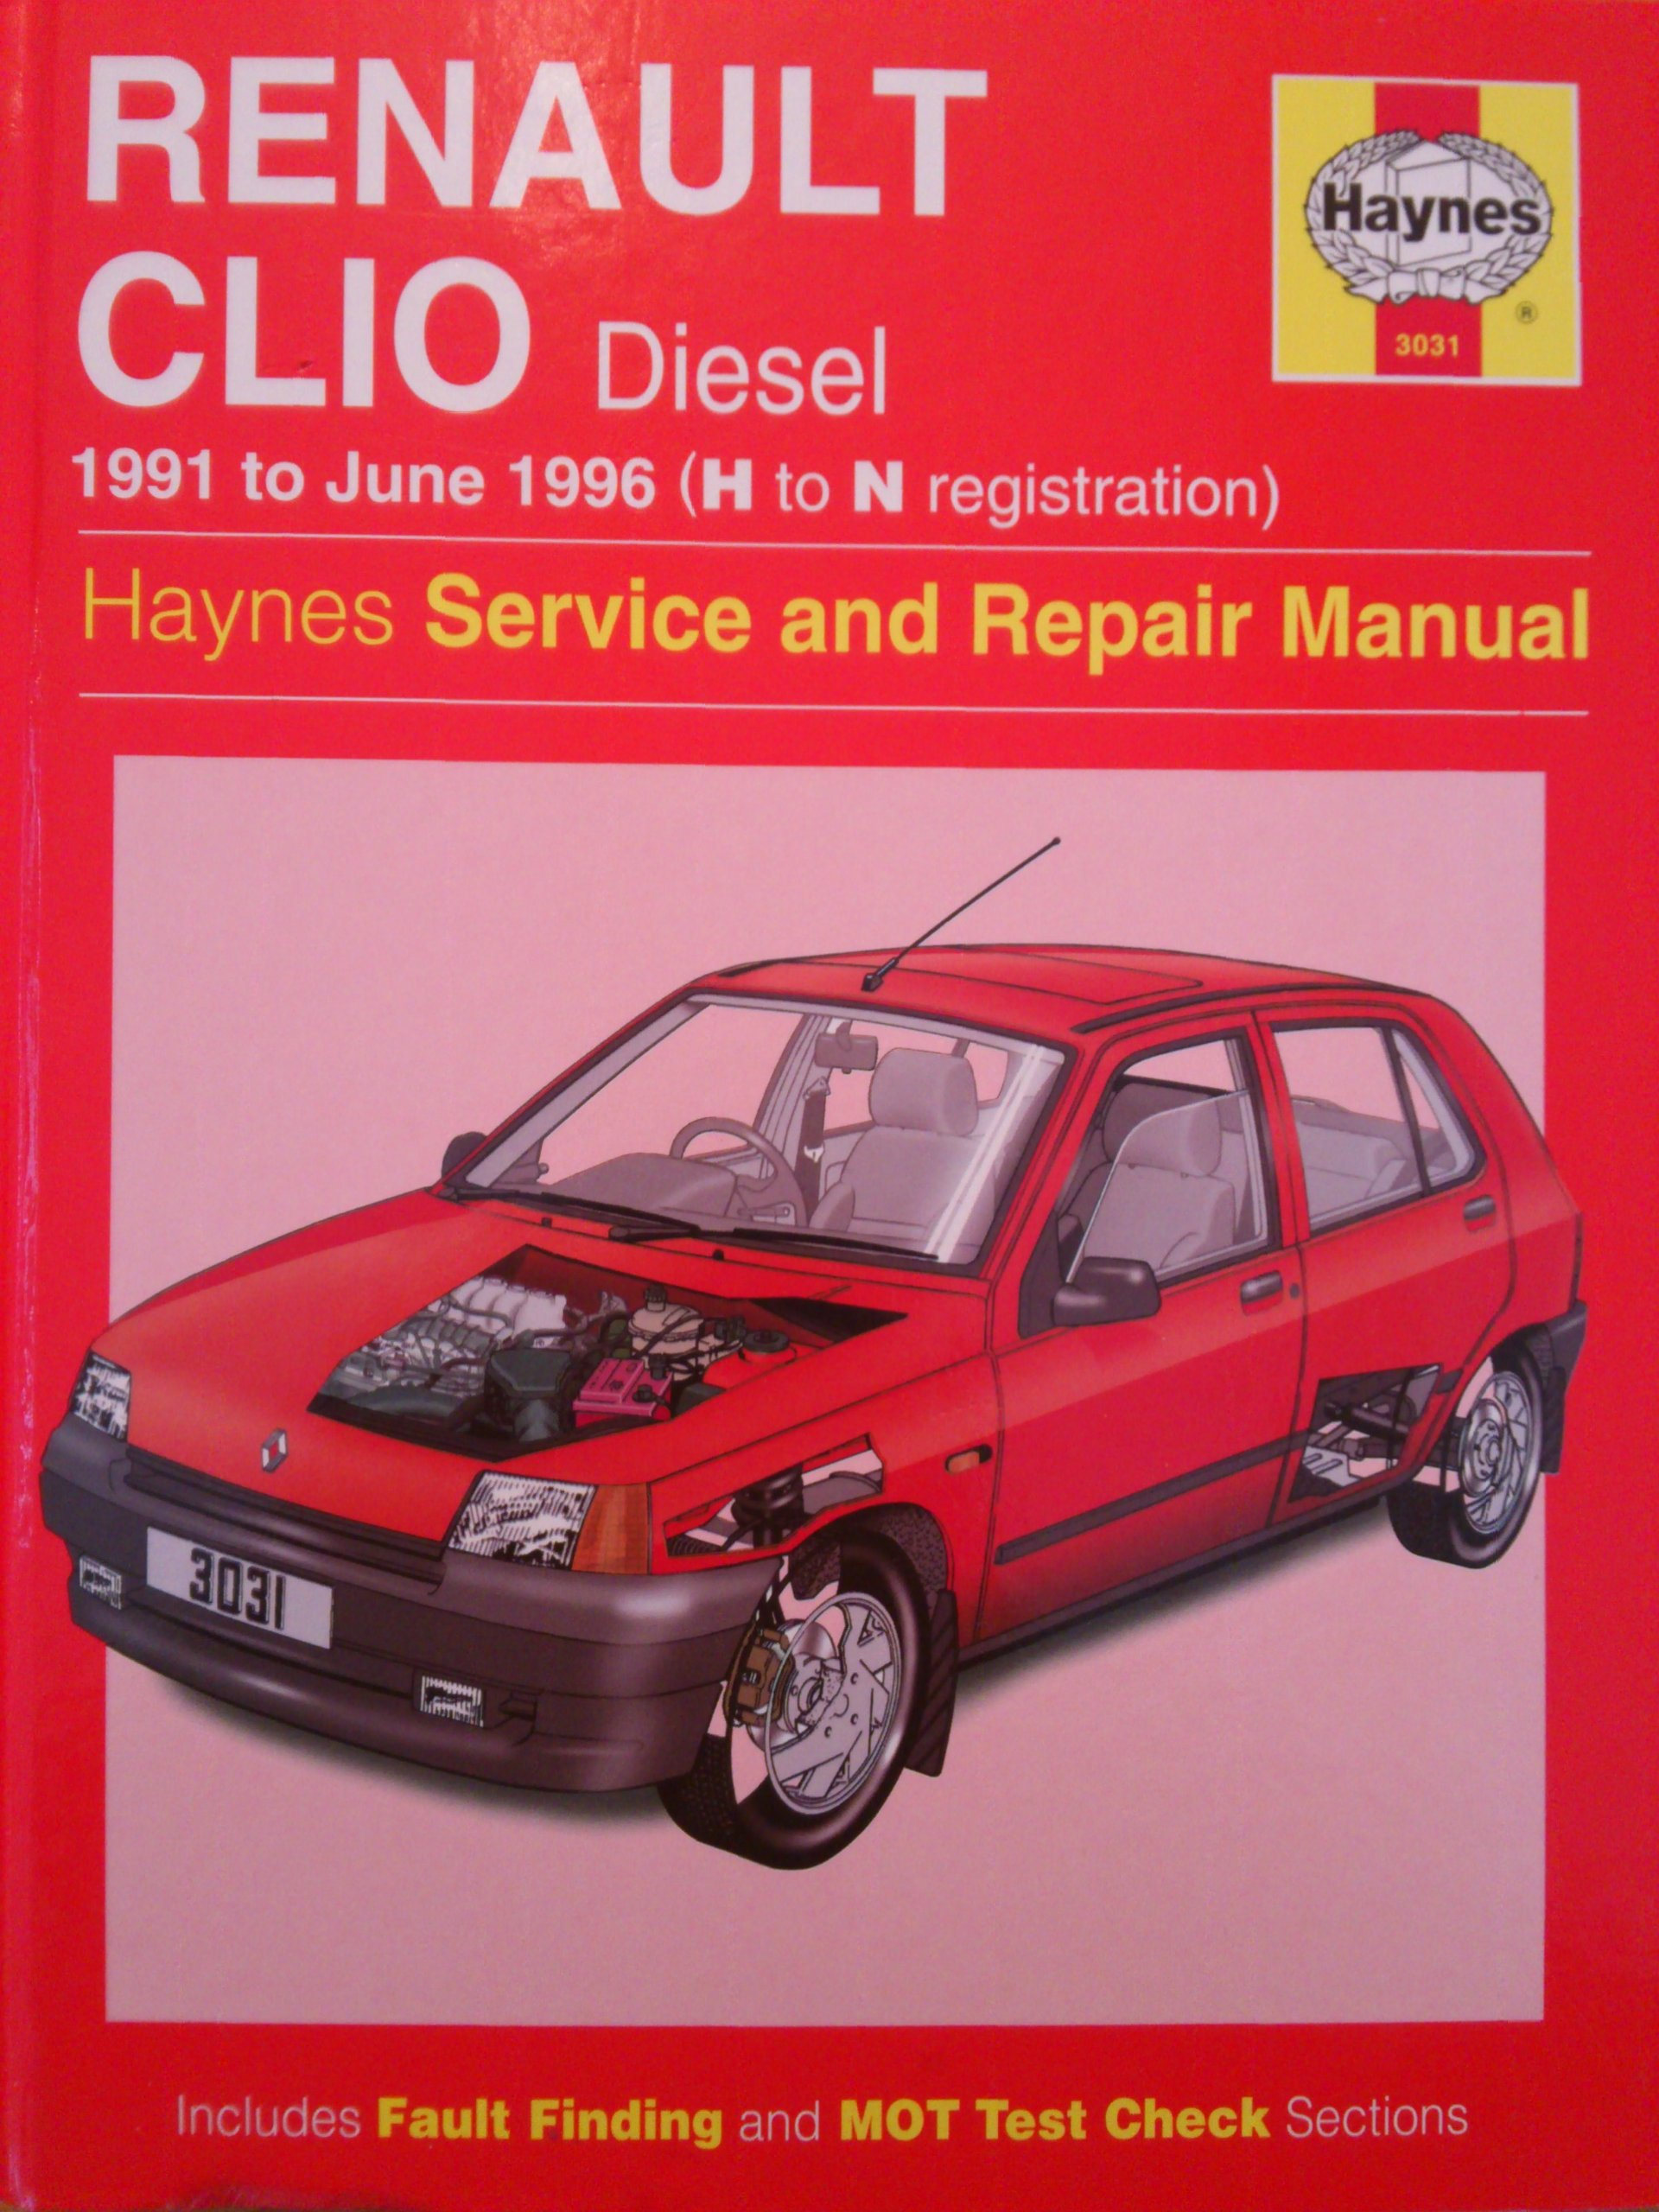 renault clio diesel service and repair manual haynes service and rh amazon co uk renault clio 1 manual renault clio 1991 manual pdf